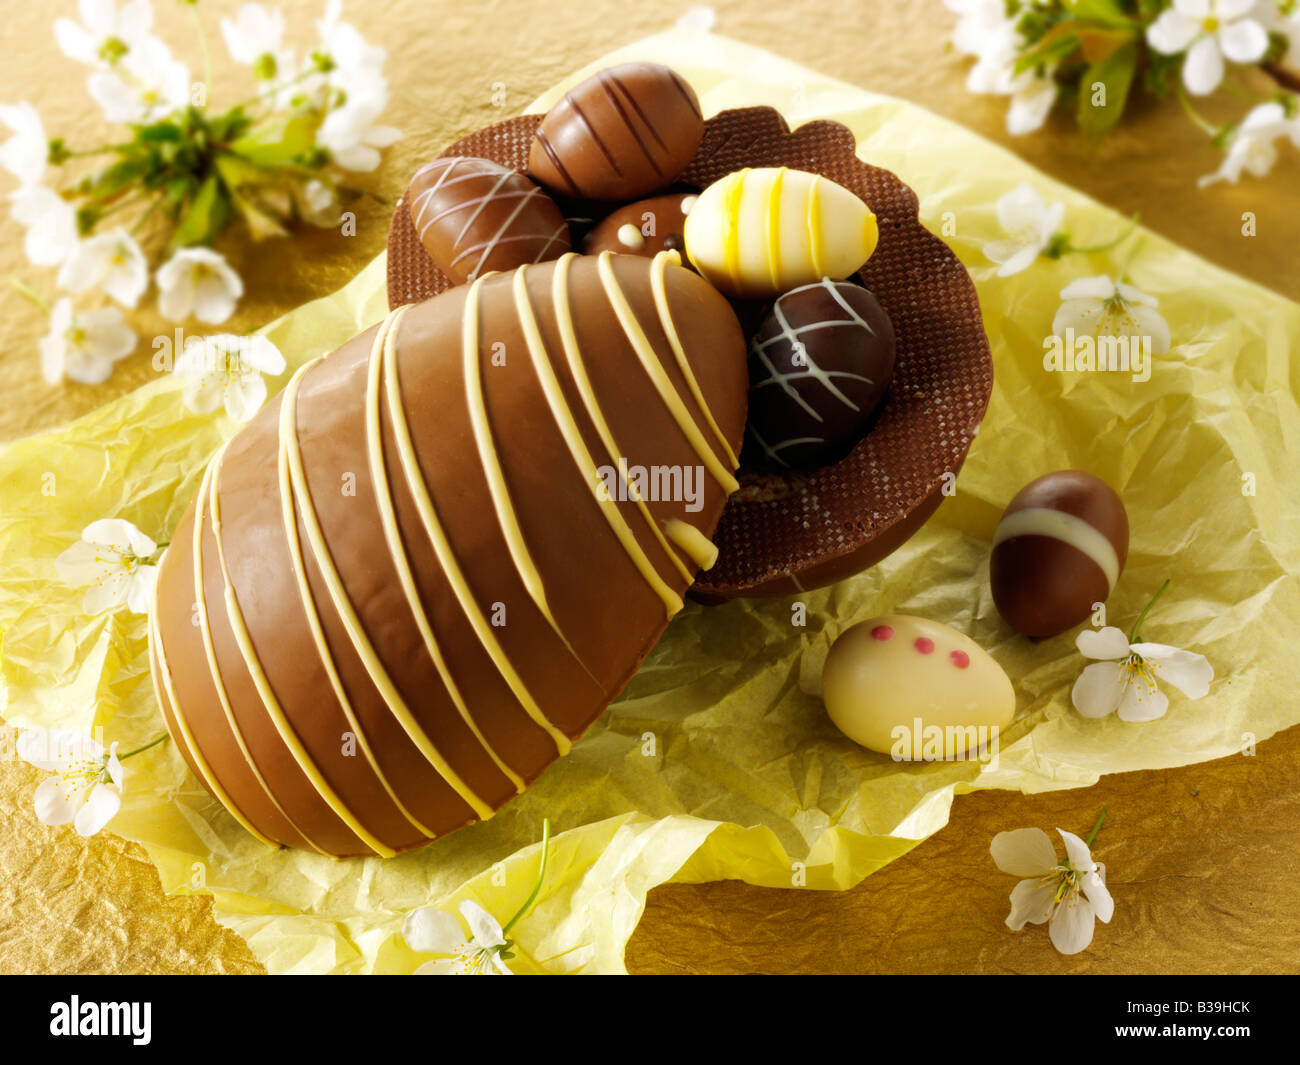 Traditional hand made decorated chocolate Easter eggs - Stock Image